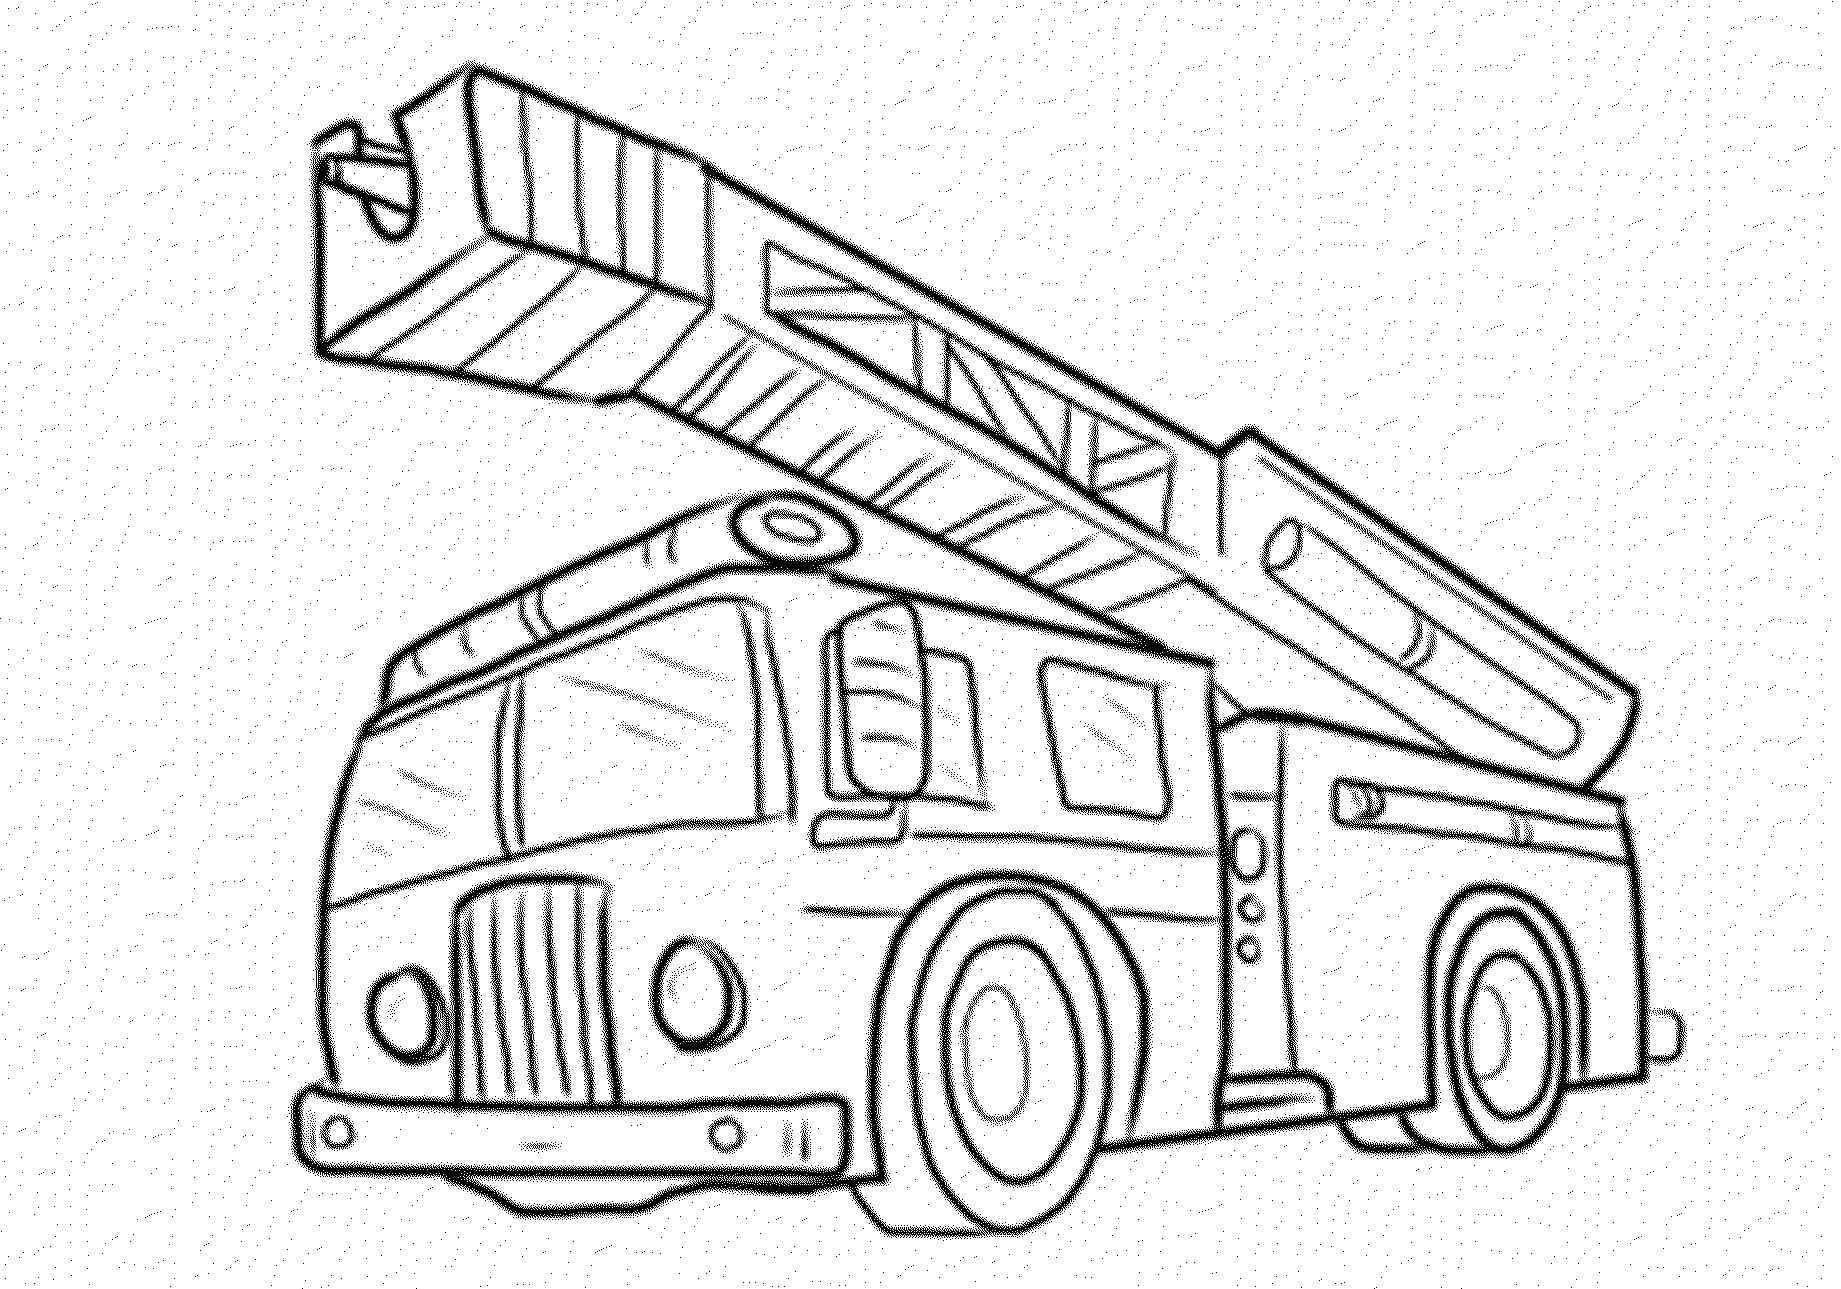 coloring-pages-fire-trucks-preschool | | BestAppsForKids.com